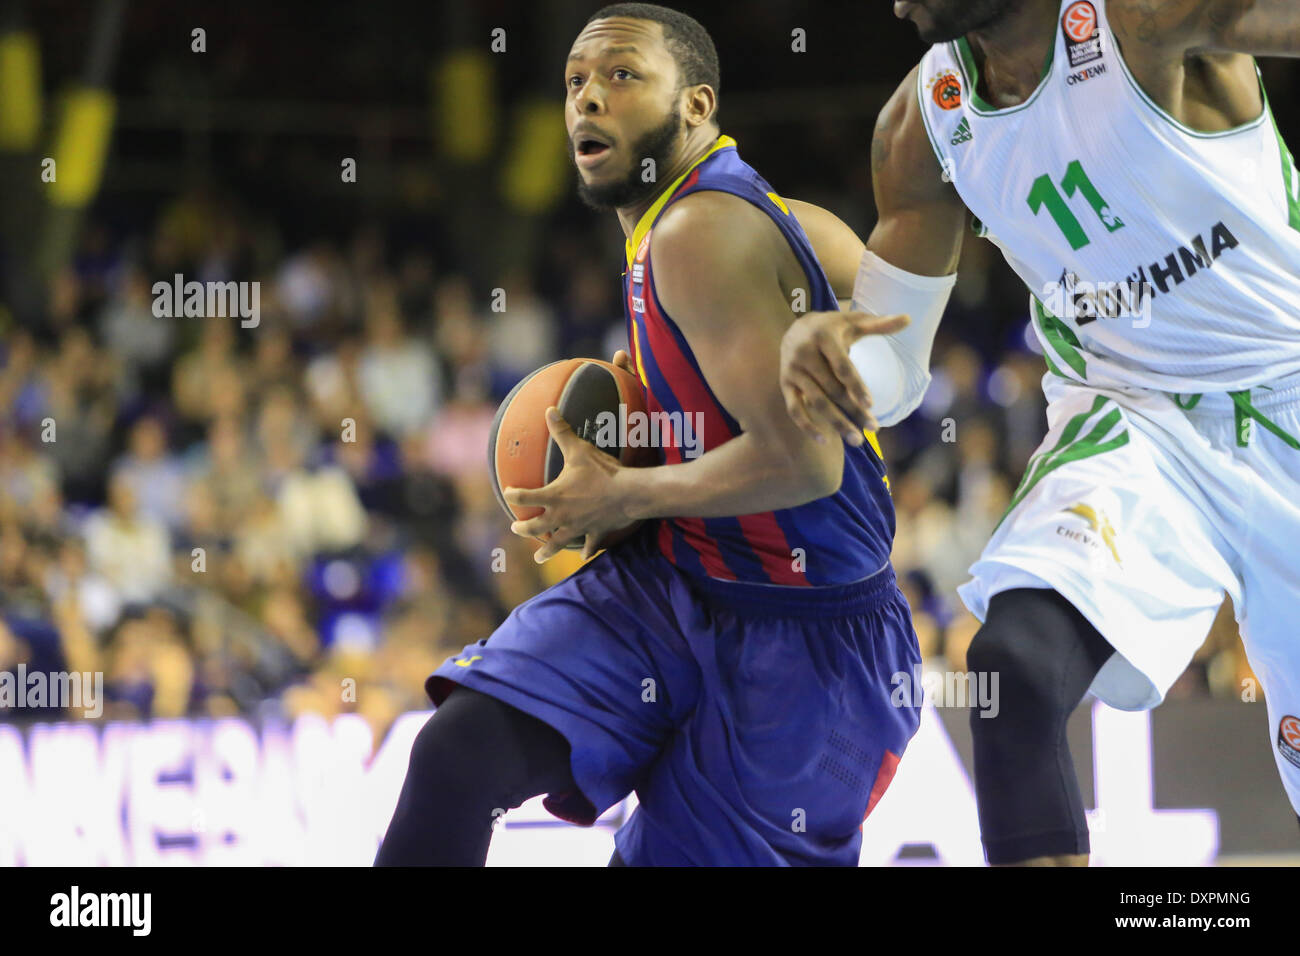 Barcelona, Spain. 28th Mar, 2014. Jacob Pullen in the match of the Top 16 Euroleague basketball between FC Barcelona and Panathinaikos, played at the Palau Blaugrana, the March 28, 2014. Photo Aline Delfim/Urbanandsport/Nurphoto. Credit:  Aline Delfim/NurPhoto/ZUMAPRESS.com/Alamy Live News - Stock Image